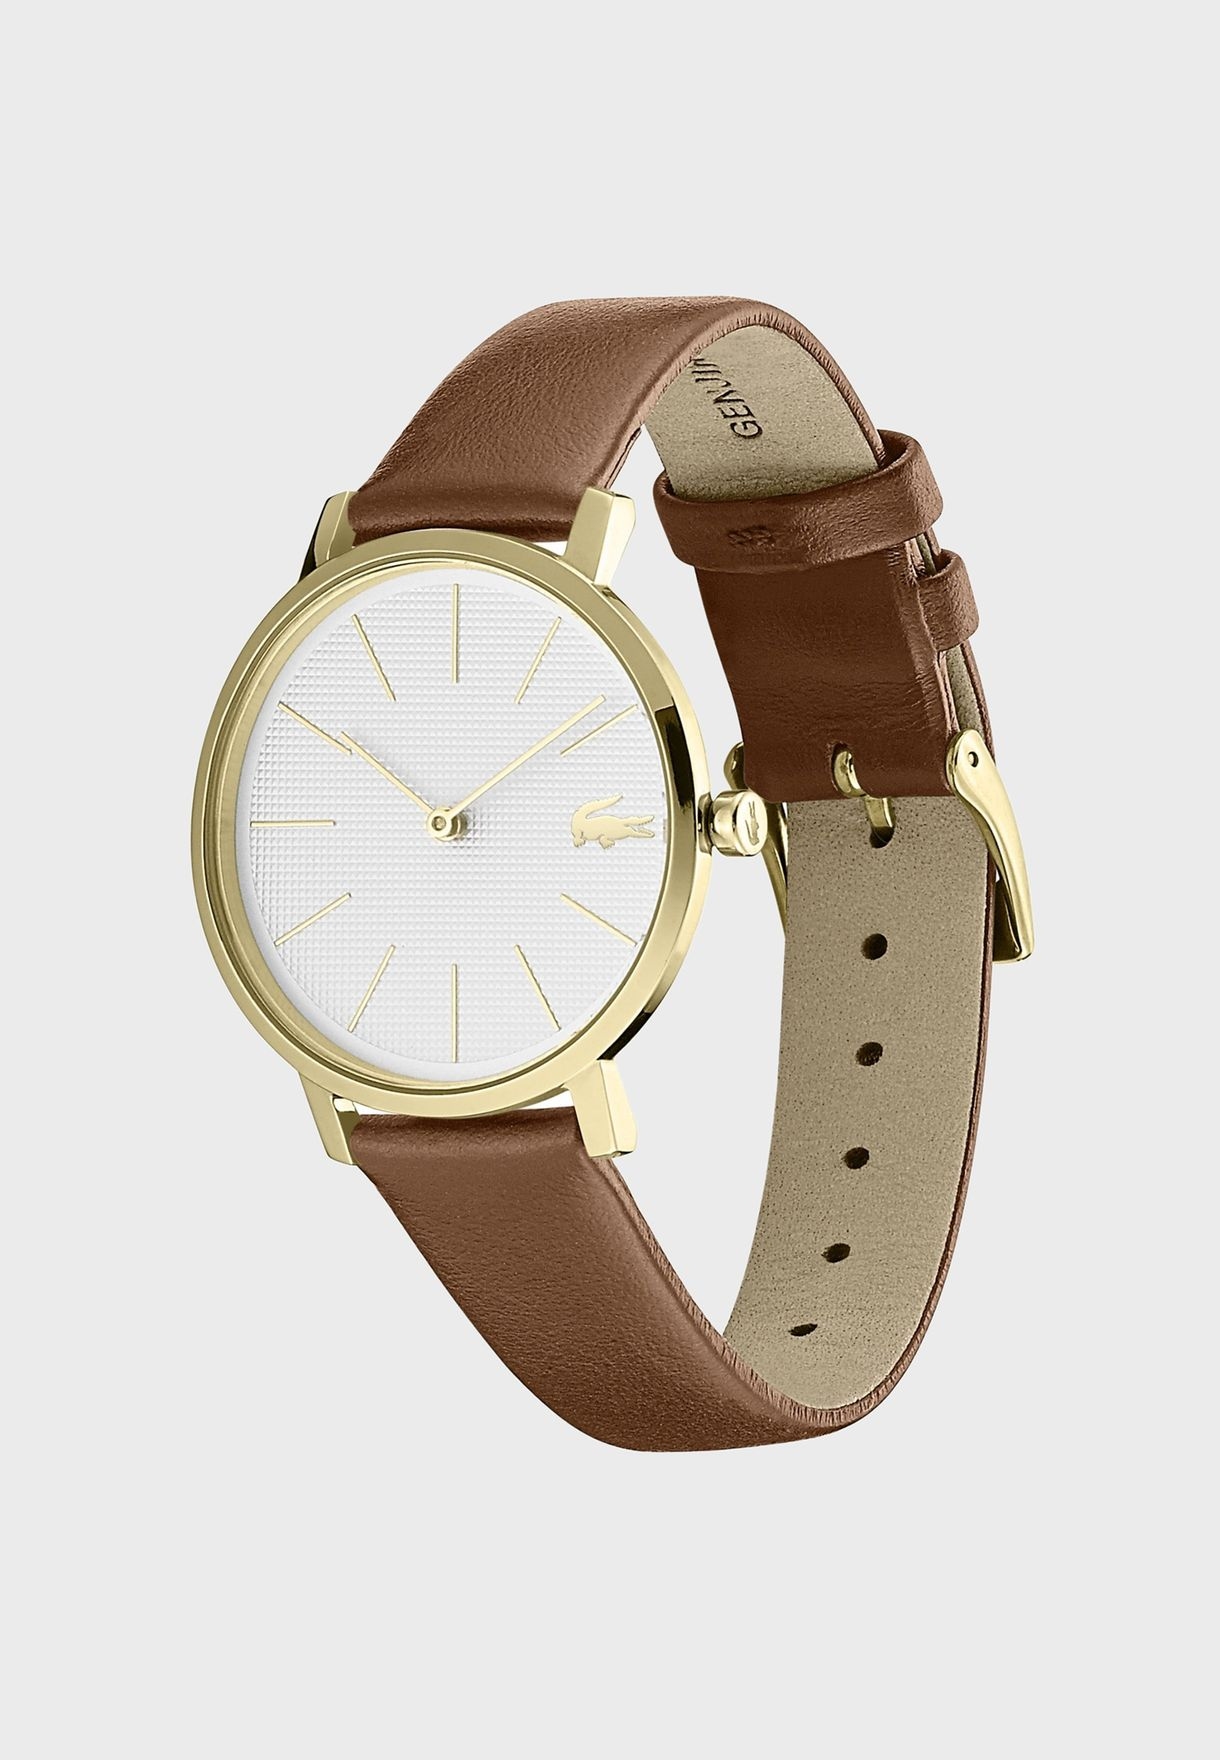 Lacoste MOON Leather Strap Watch for Women - 2001106